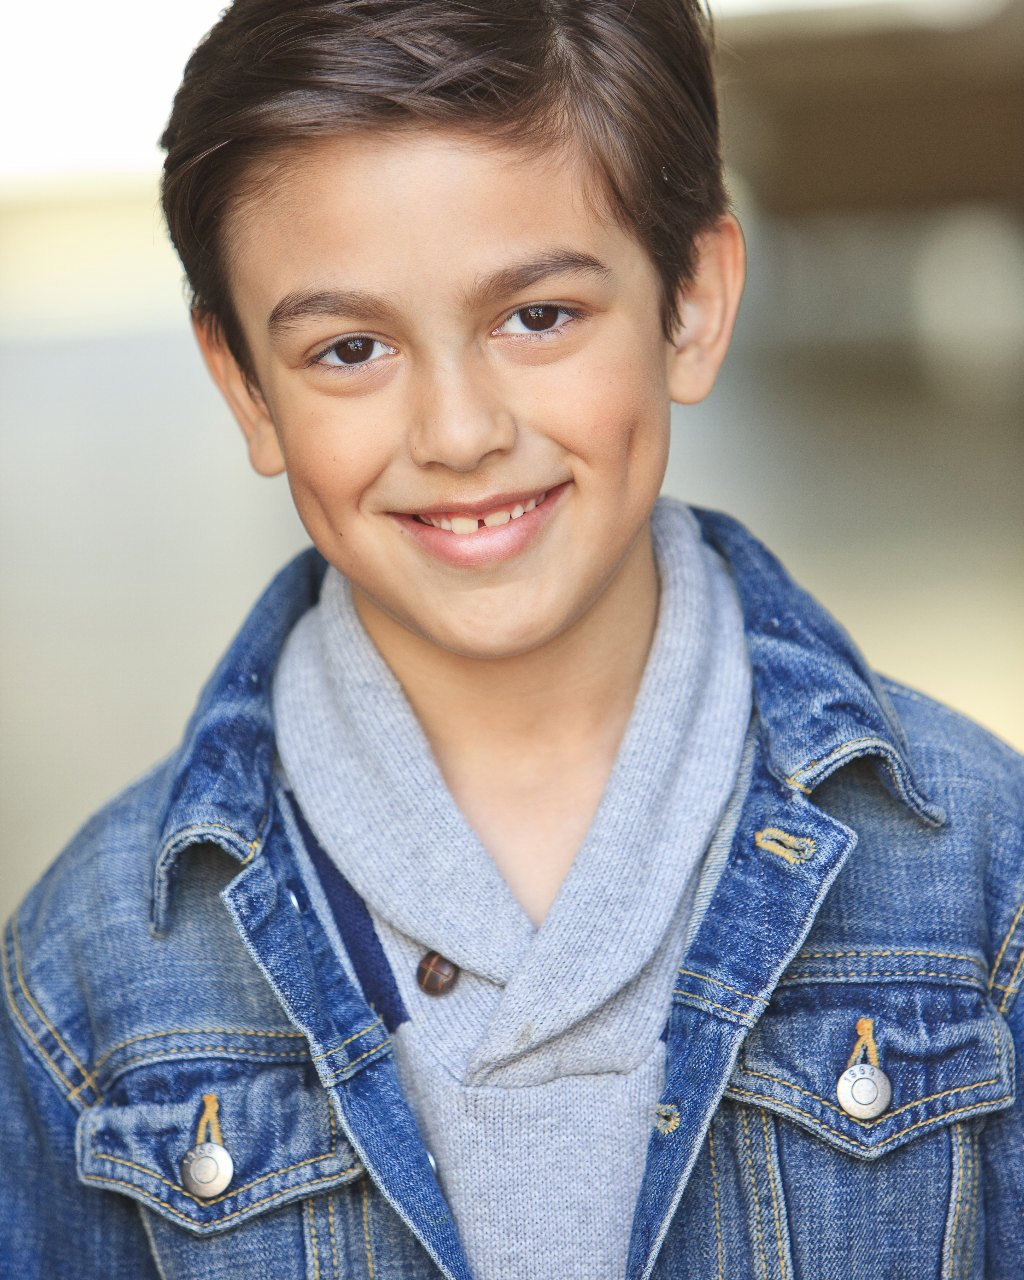 321actingschool Welcomes Young Actor Lucas Sanson 3 2 1